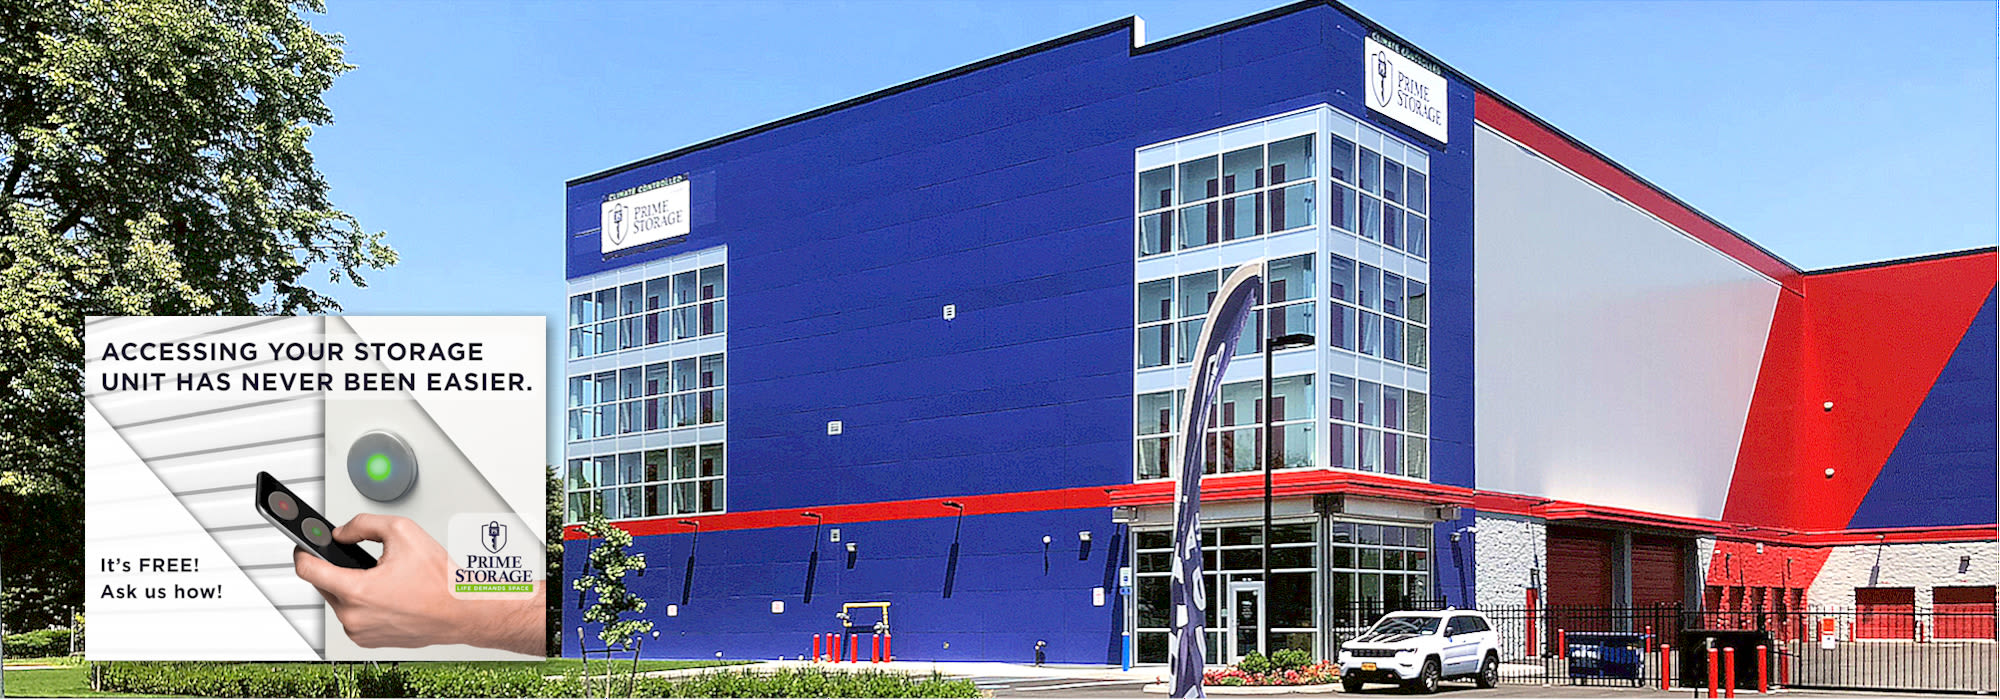 Prime Storage in Queens, NY